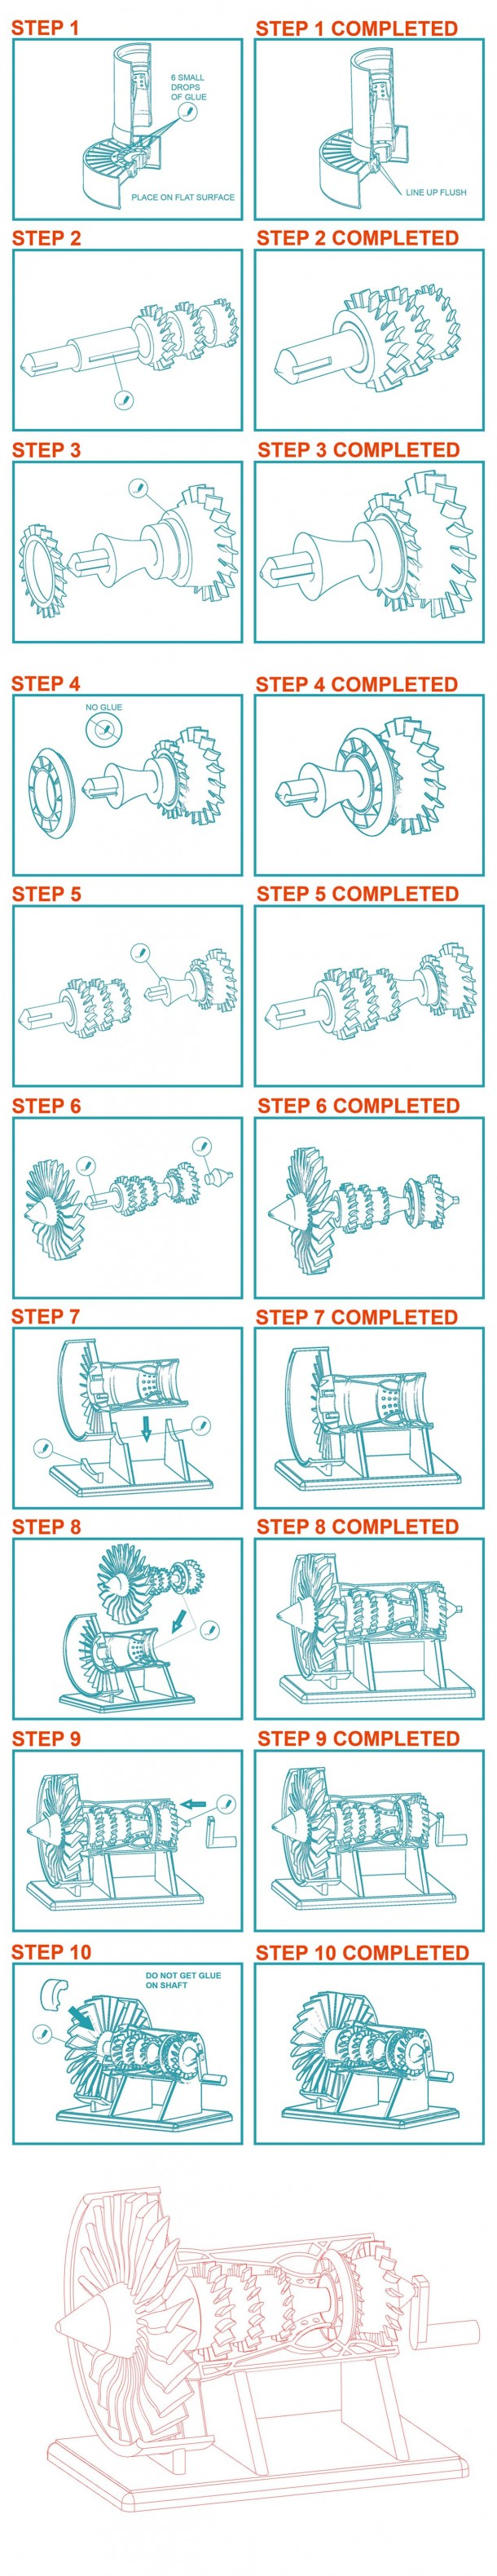 Jet Engine Assembly Guide